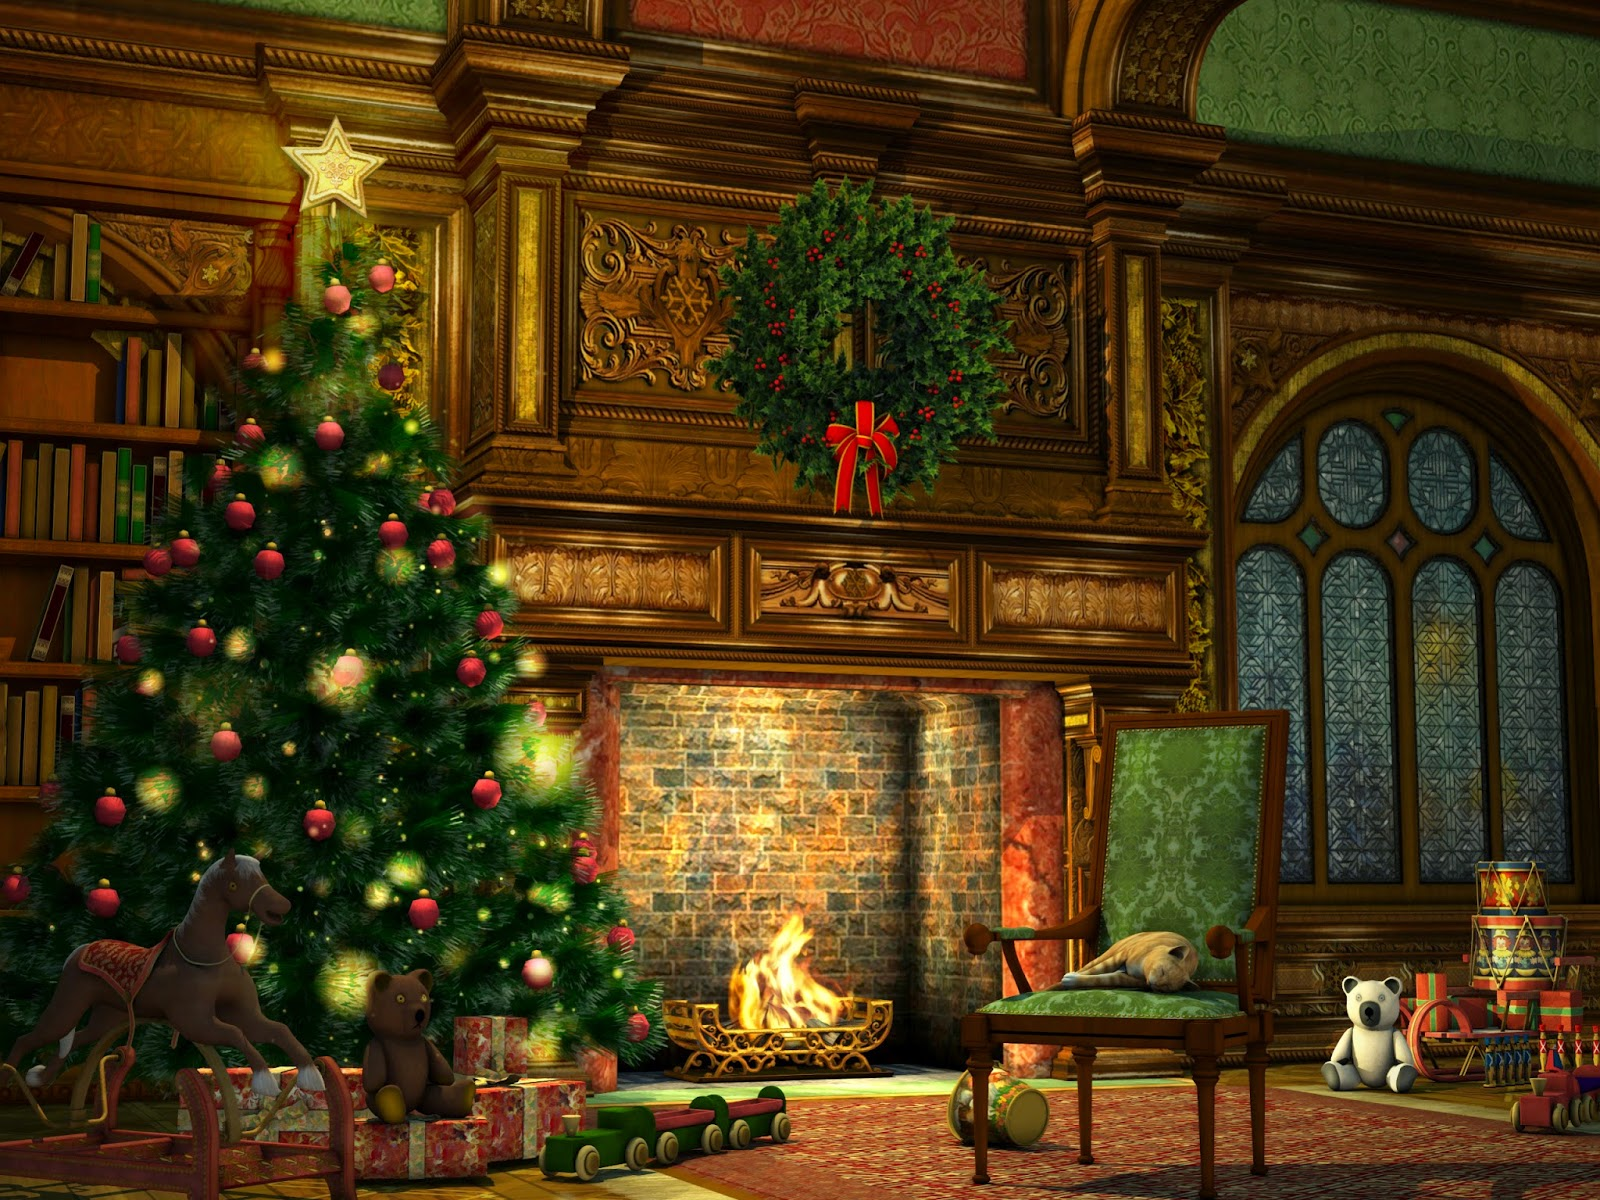 Fireplace-with-tree-chair-mantel-garland-wooden-background-picture-images.jpg